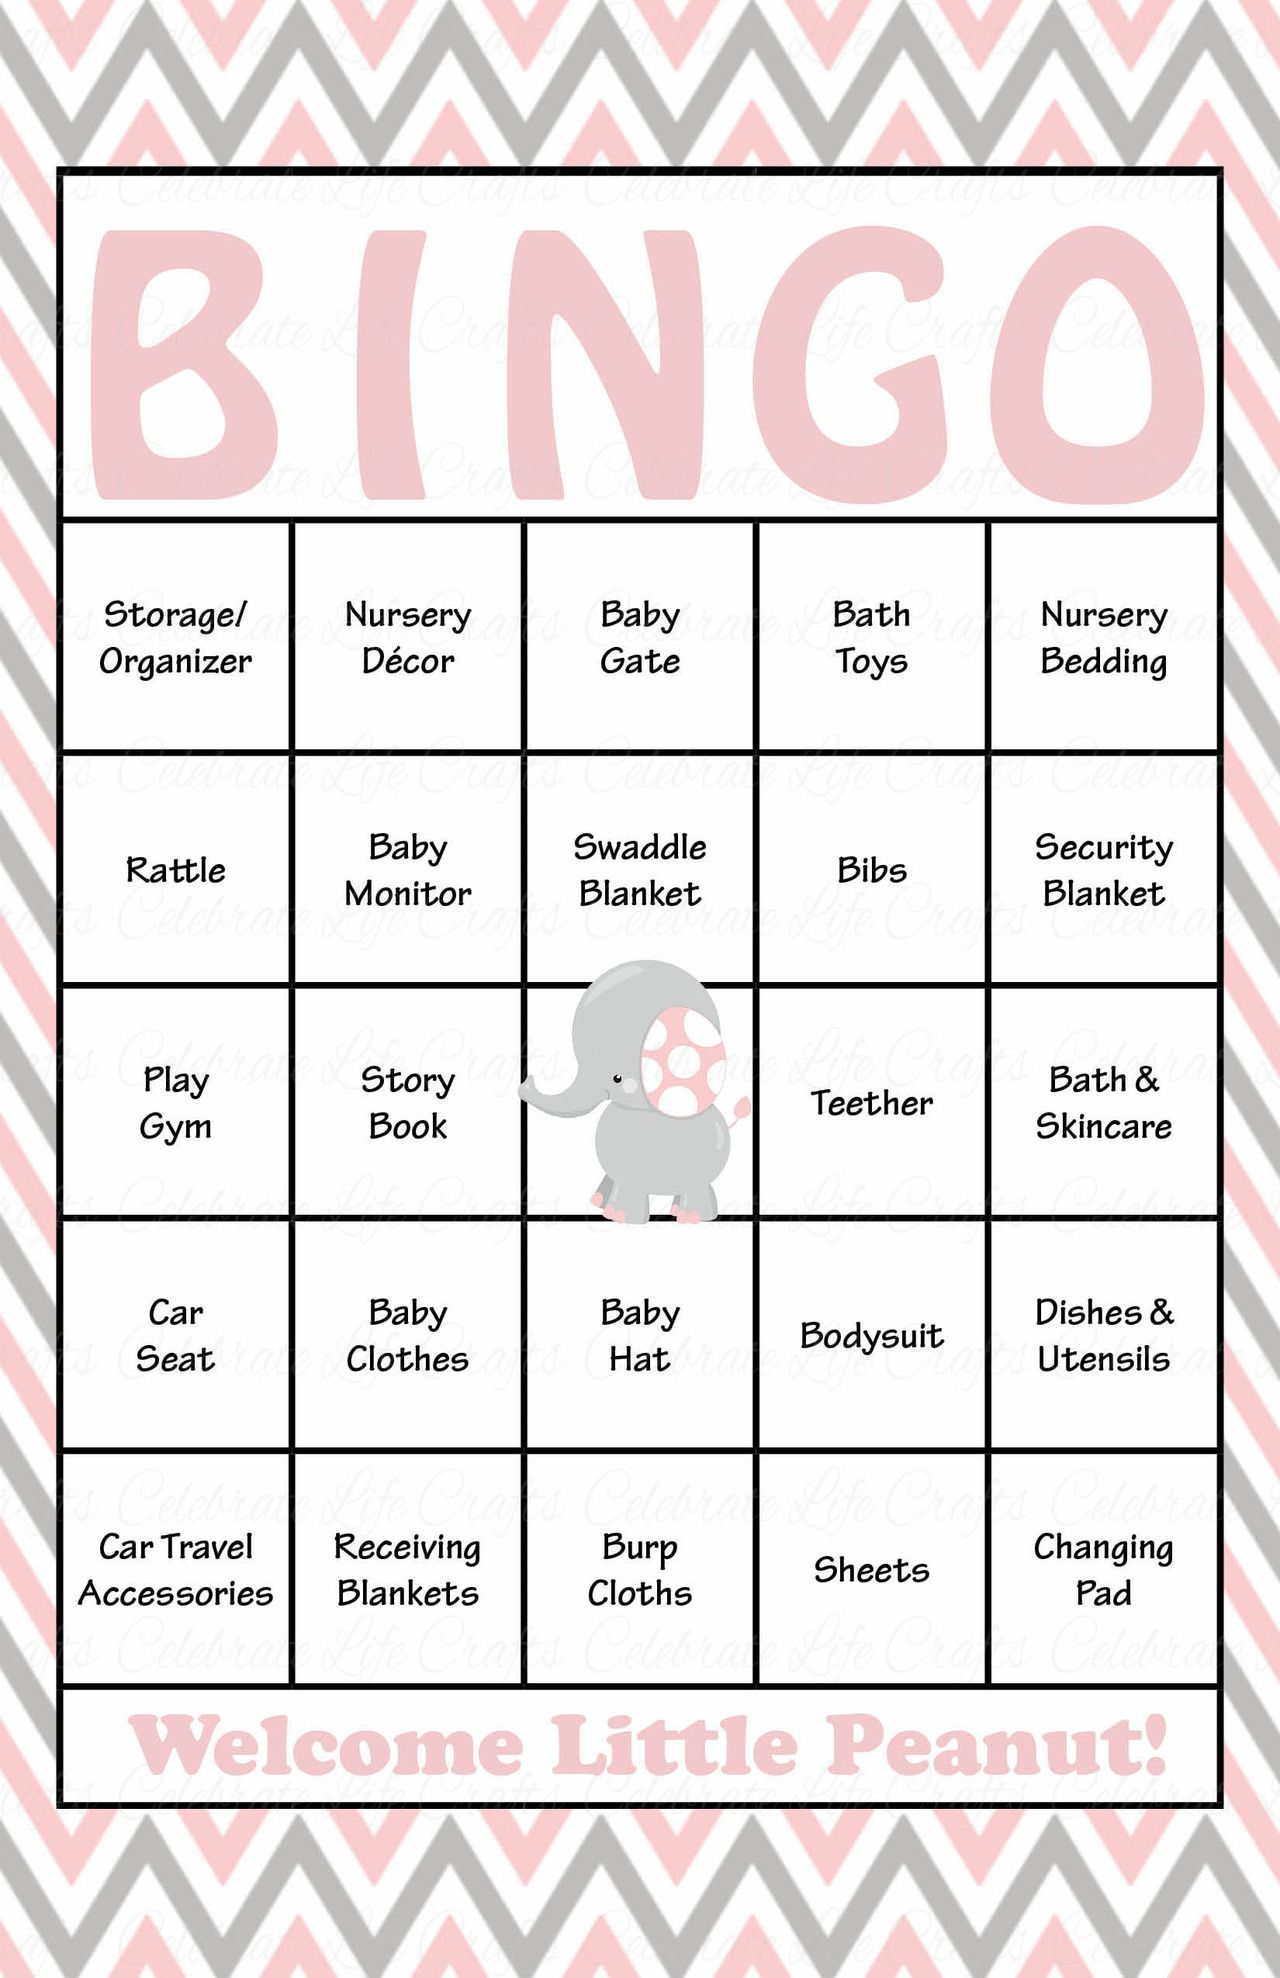 Elephant Baby Bingo Cards - Prefilled - Baby Shower Game for Girl - Pink  &